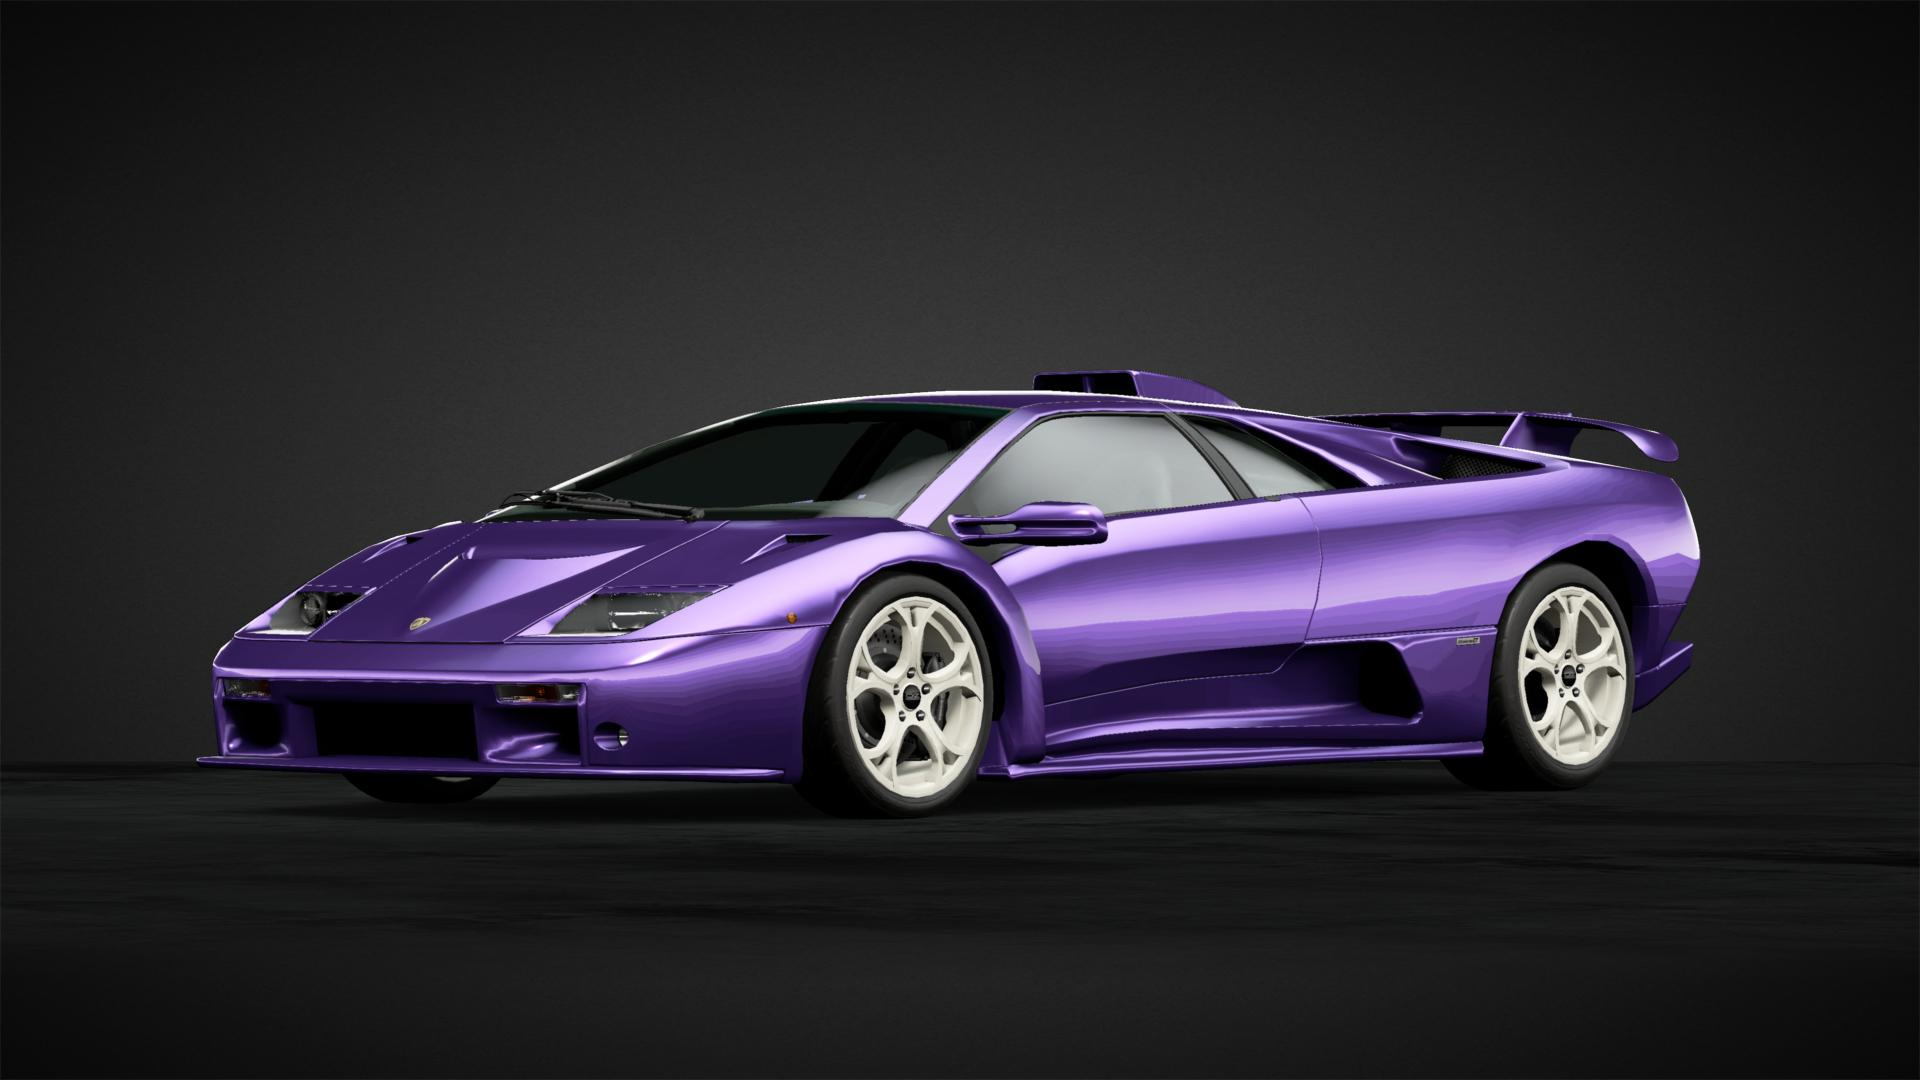 Gone In 60 Seconds Purple Car Livery By Kriszombie Community